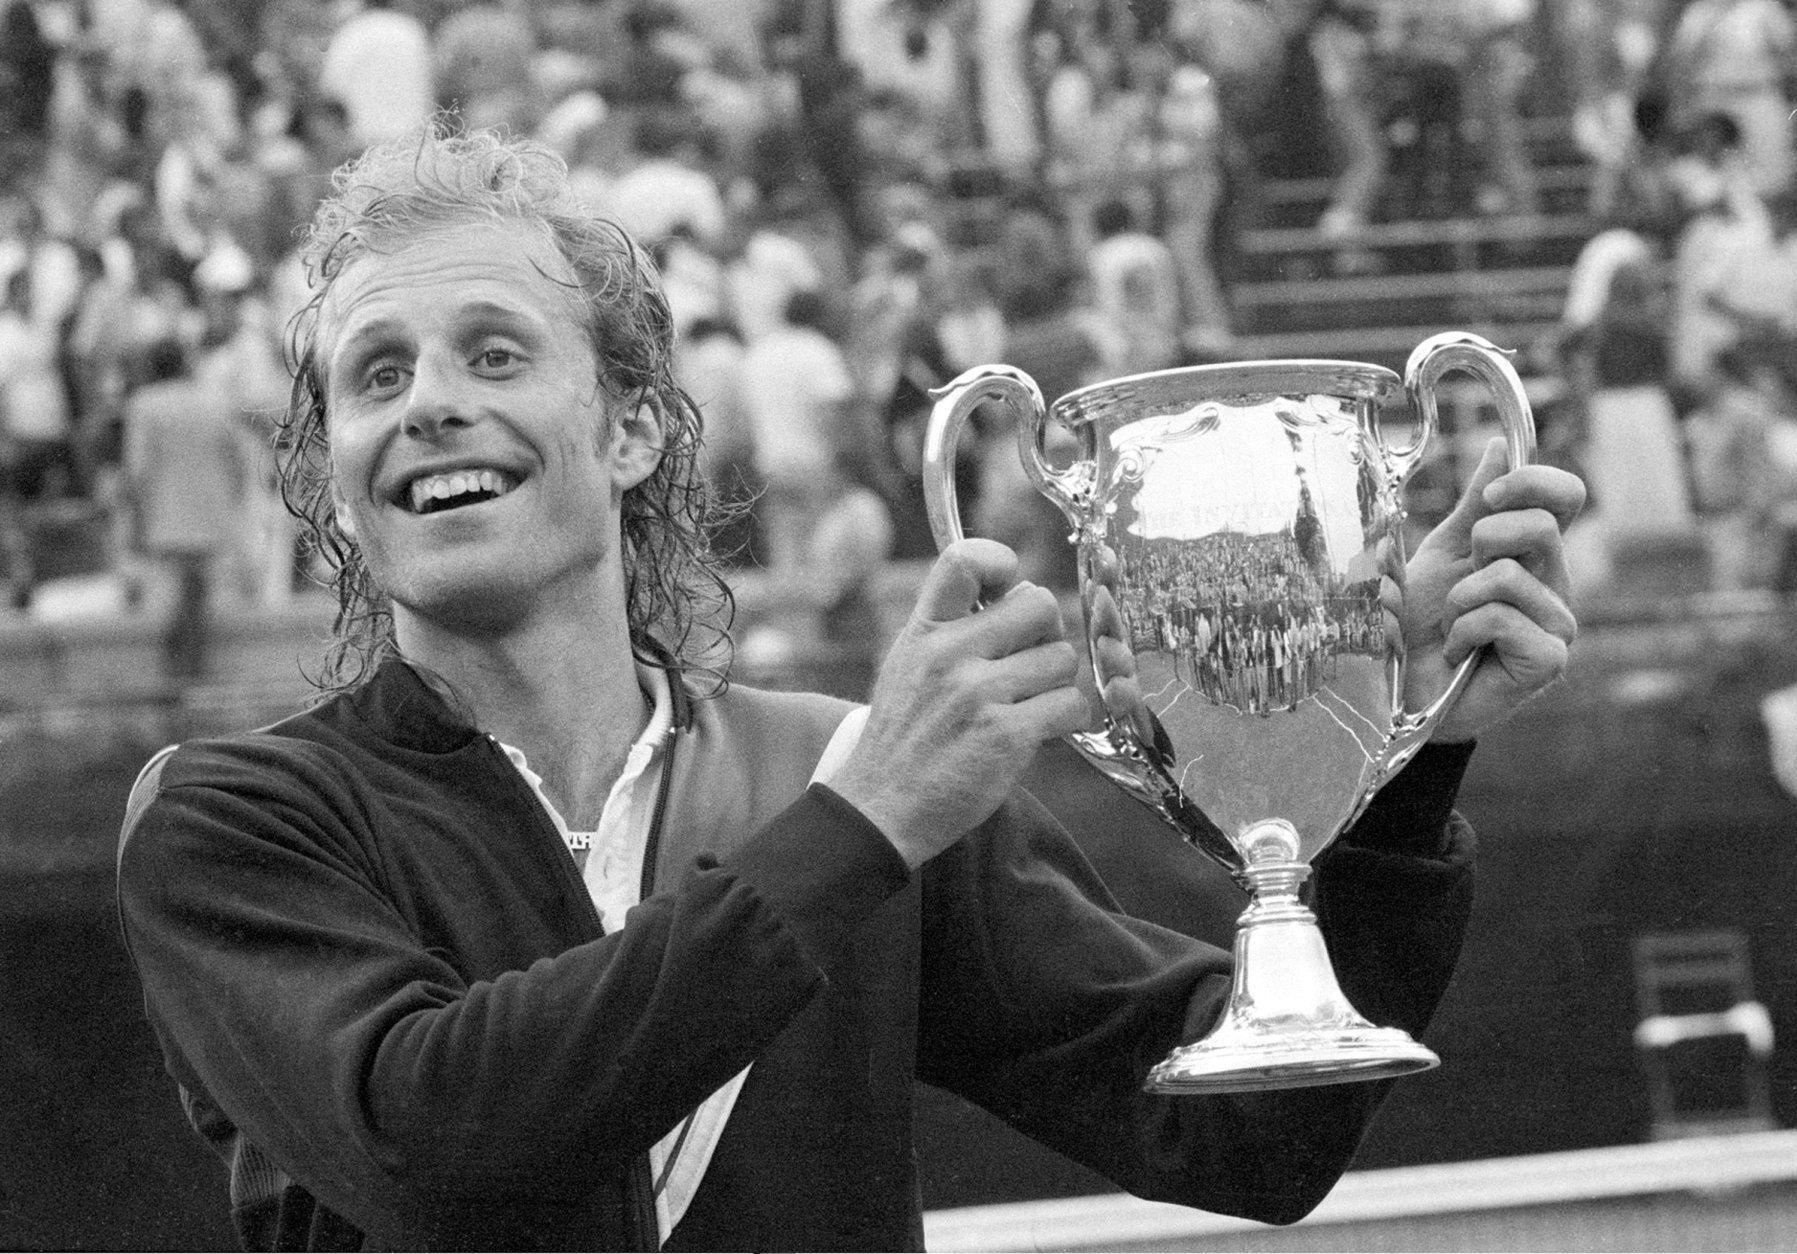 Vitas Gerulaitis holds up his trophy cup after winning the $300,000 Forest Hills Invitational Tournament in Queens, New York, Sunday, July 16, 1978.  Gerulaitis won the $100,000 first prize after defeating his opponent Ilie Nastase, 6-2, 6-0.  (AP Photo/Dave Pickoff)